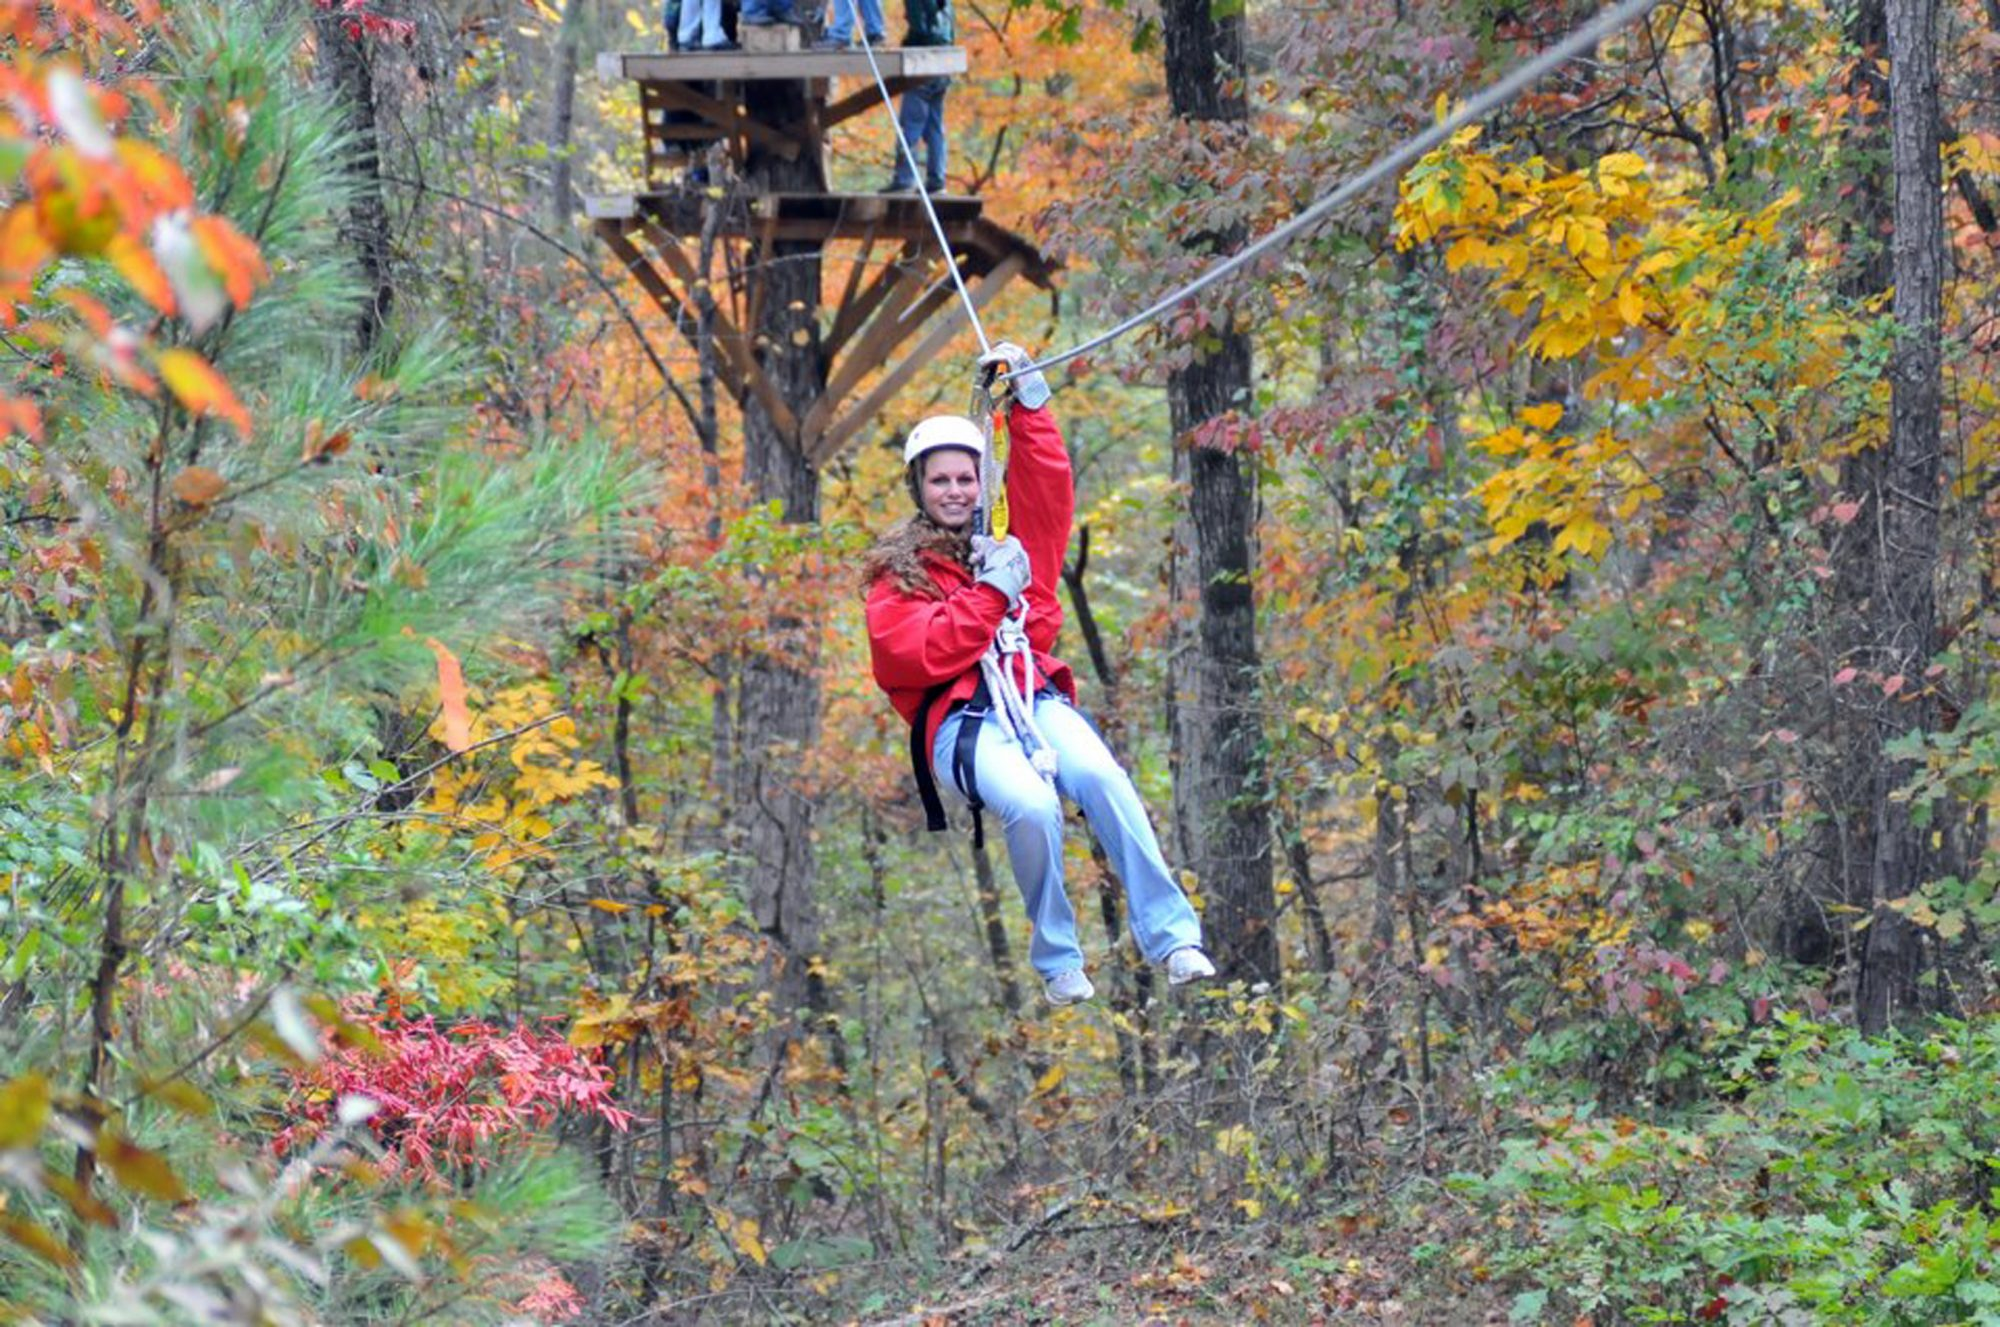 hbm-girl-ziplining-fall-color.jpg